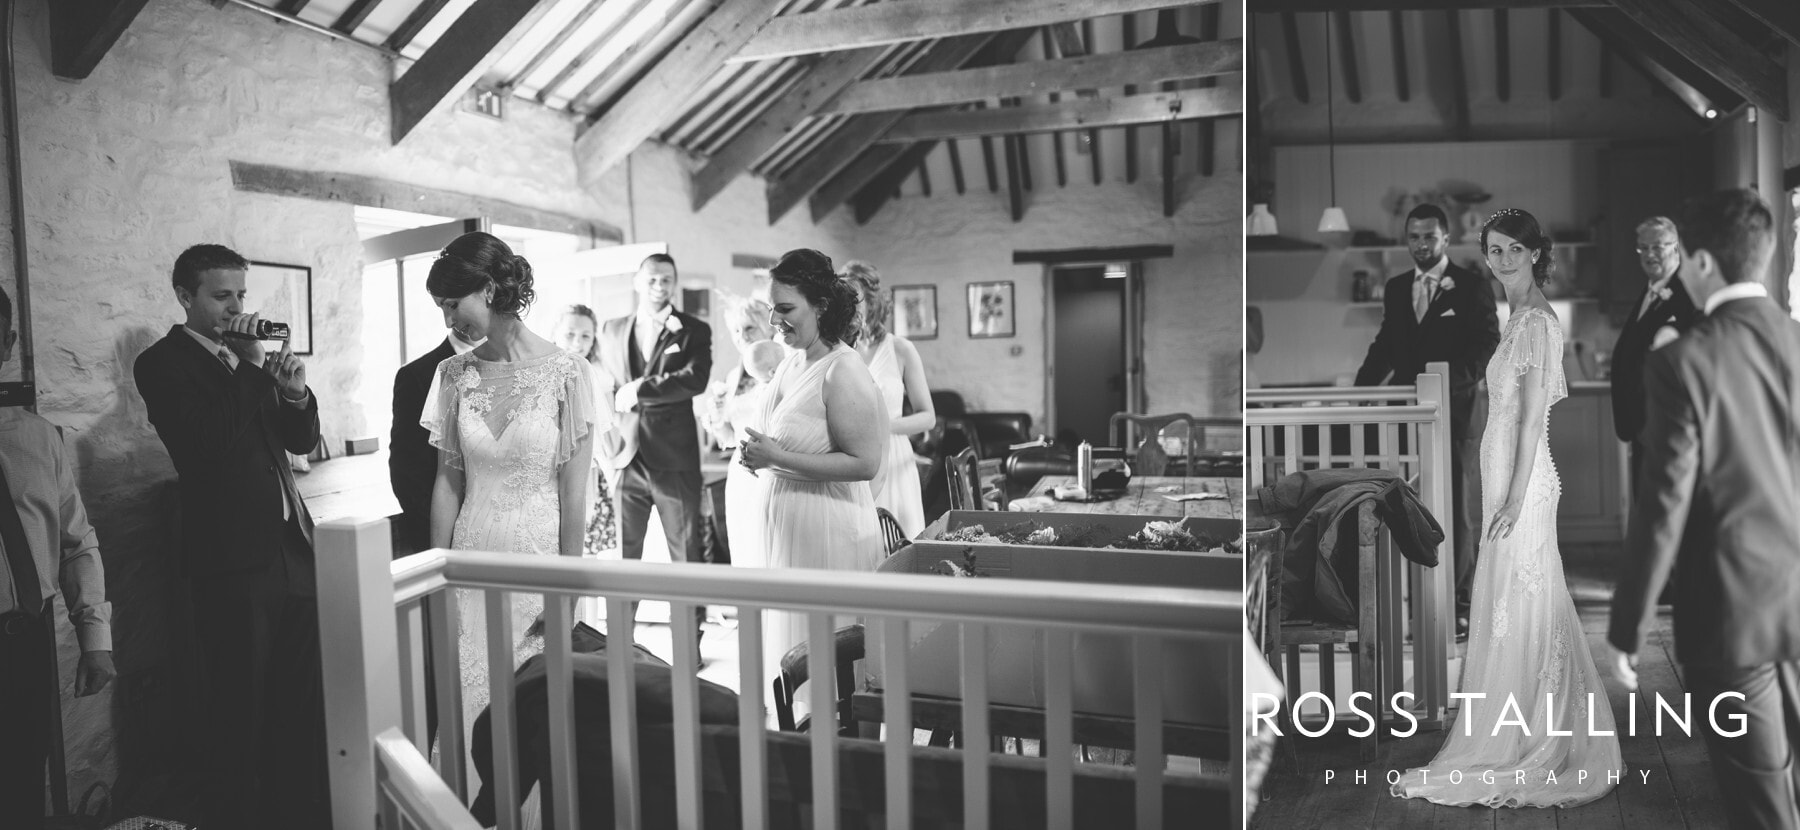 Wedding Photography Cornwall - Nancarrow Farm - Jess & Dave_0018